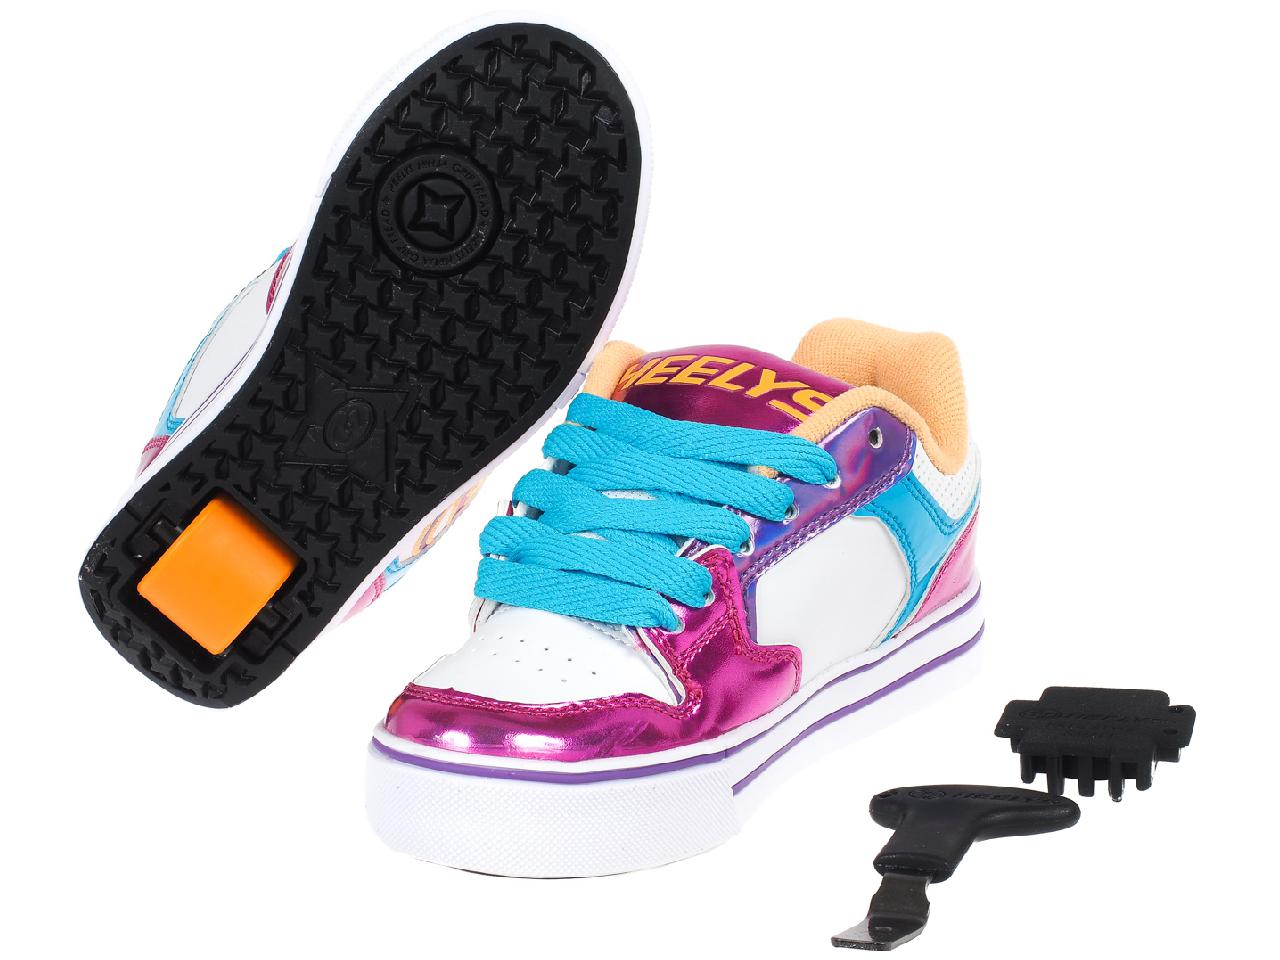 Shoes-to-Casters-Heelys-Motion-More-Fuchsia-White-Pink-11296-New thumbnail 5